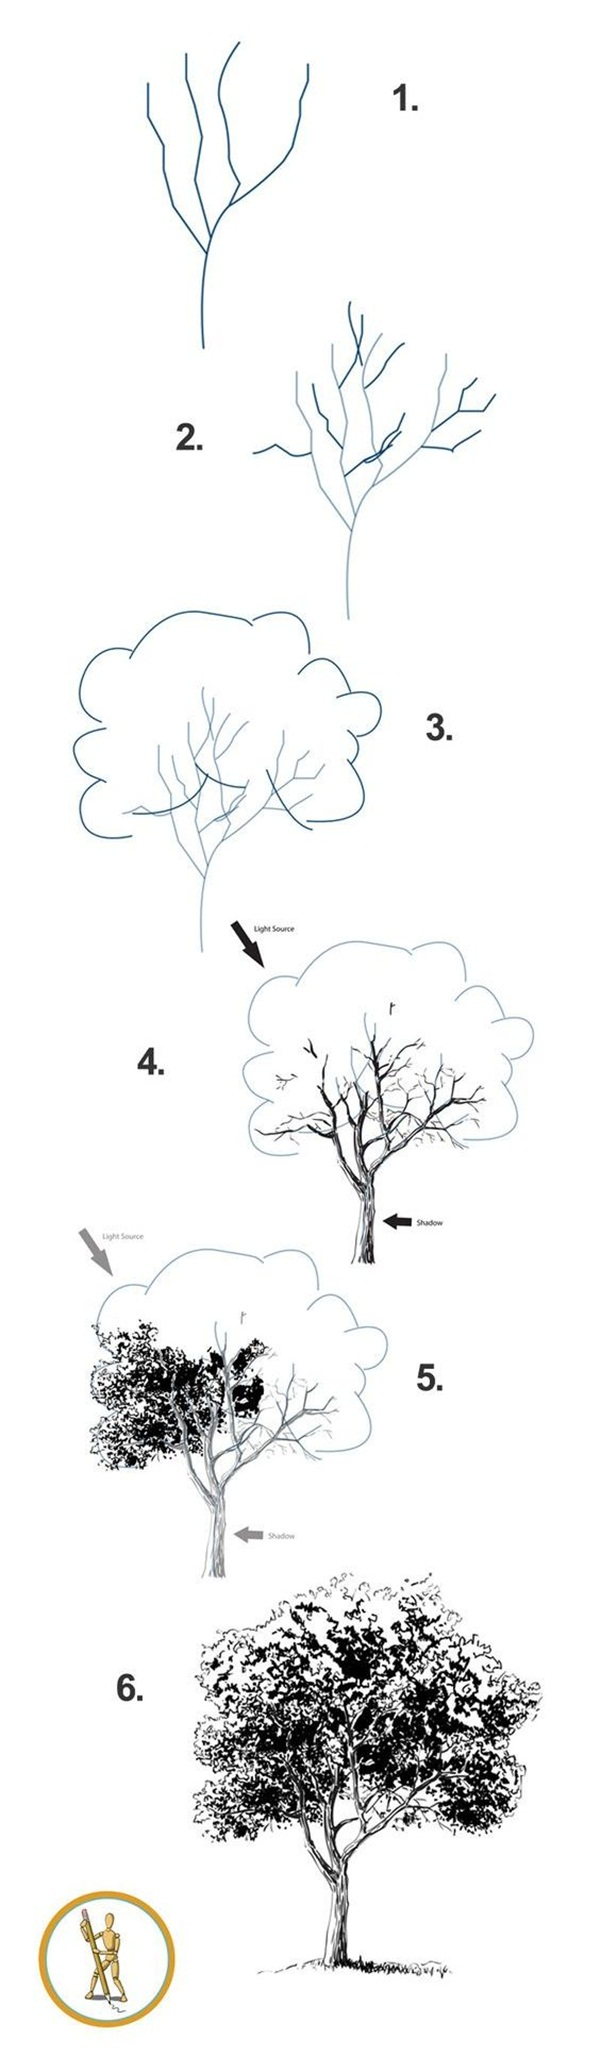 how to draw a tree step by step with leaves